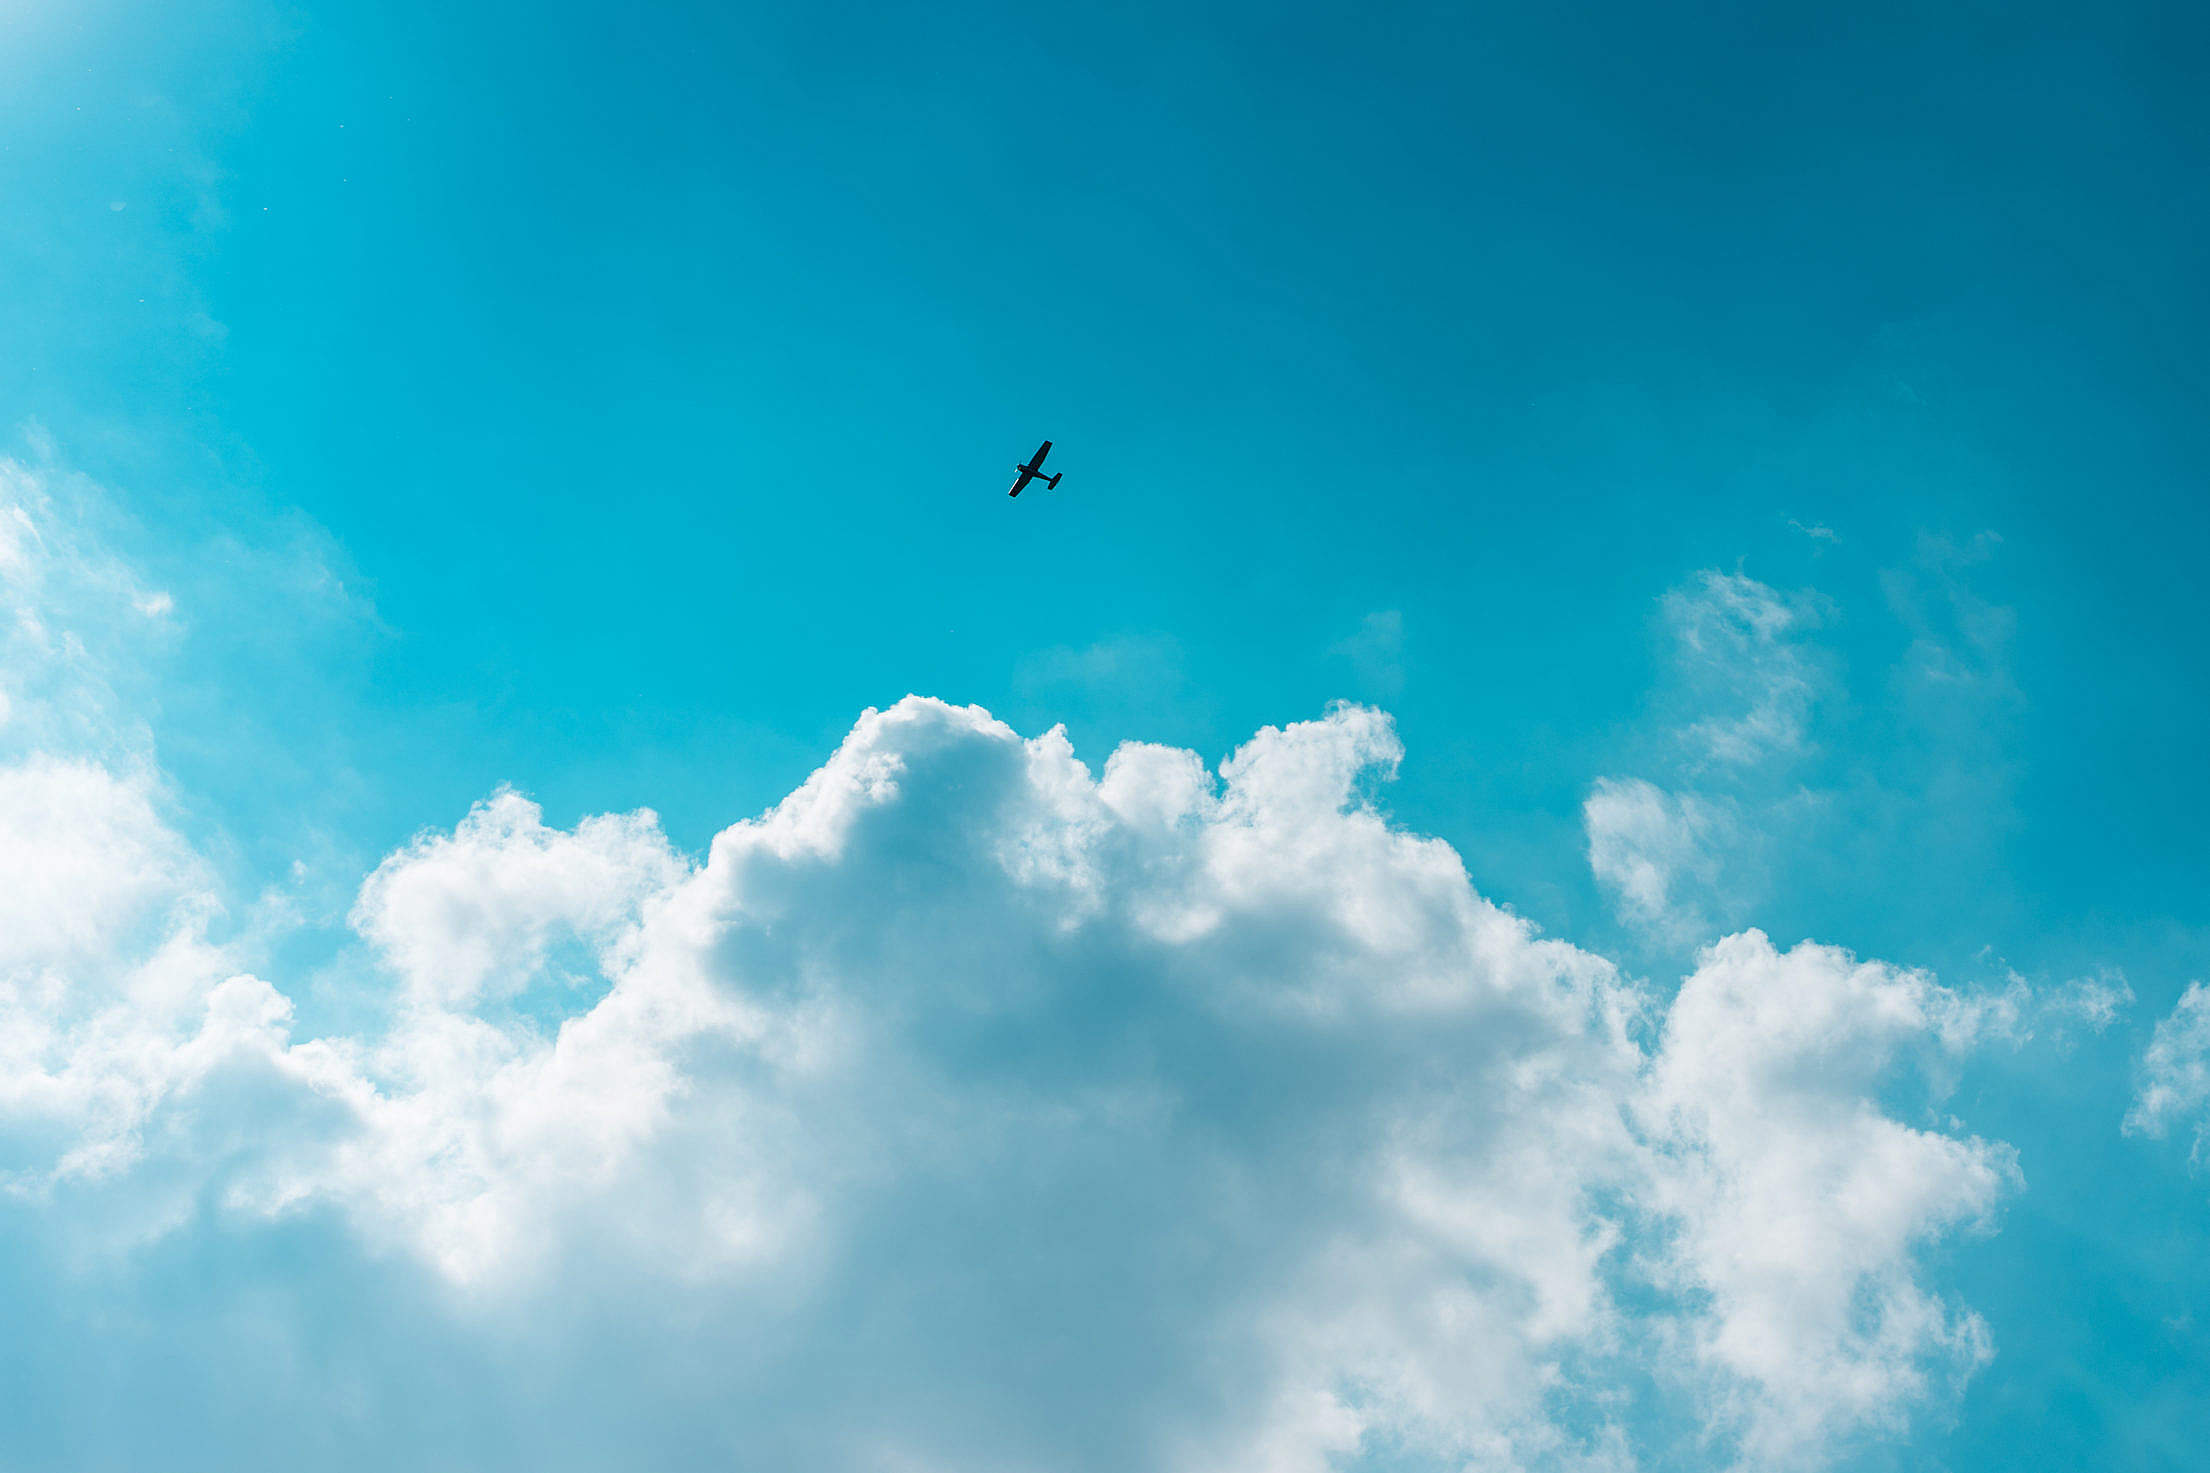 Little Plane Above The Clouds Free Stock Photo